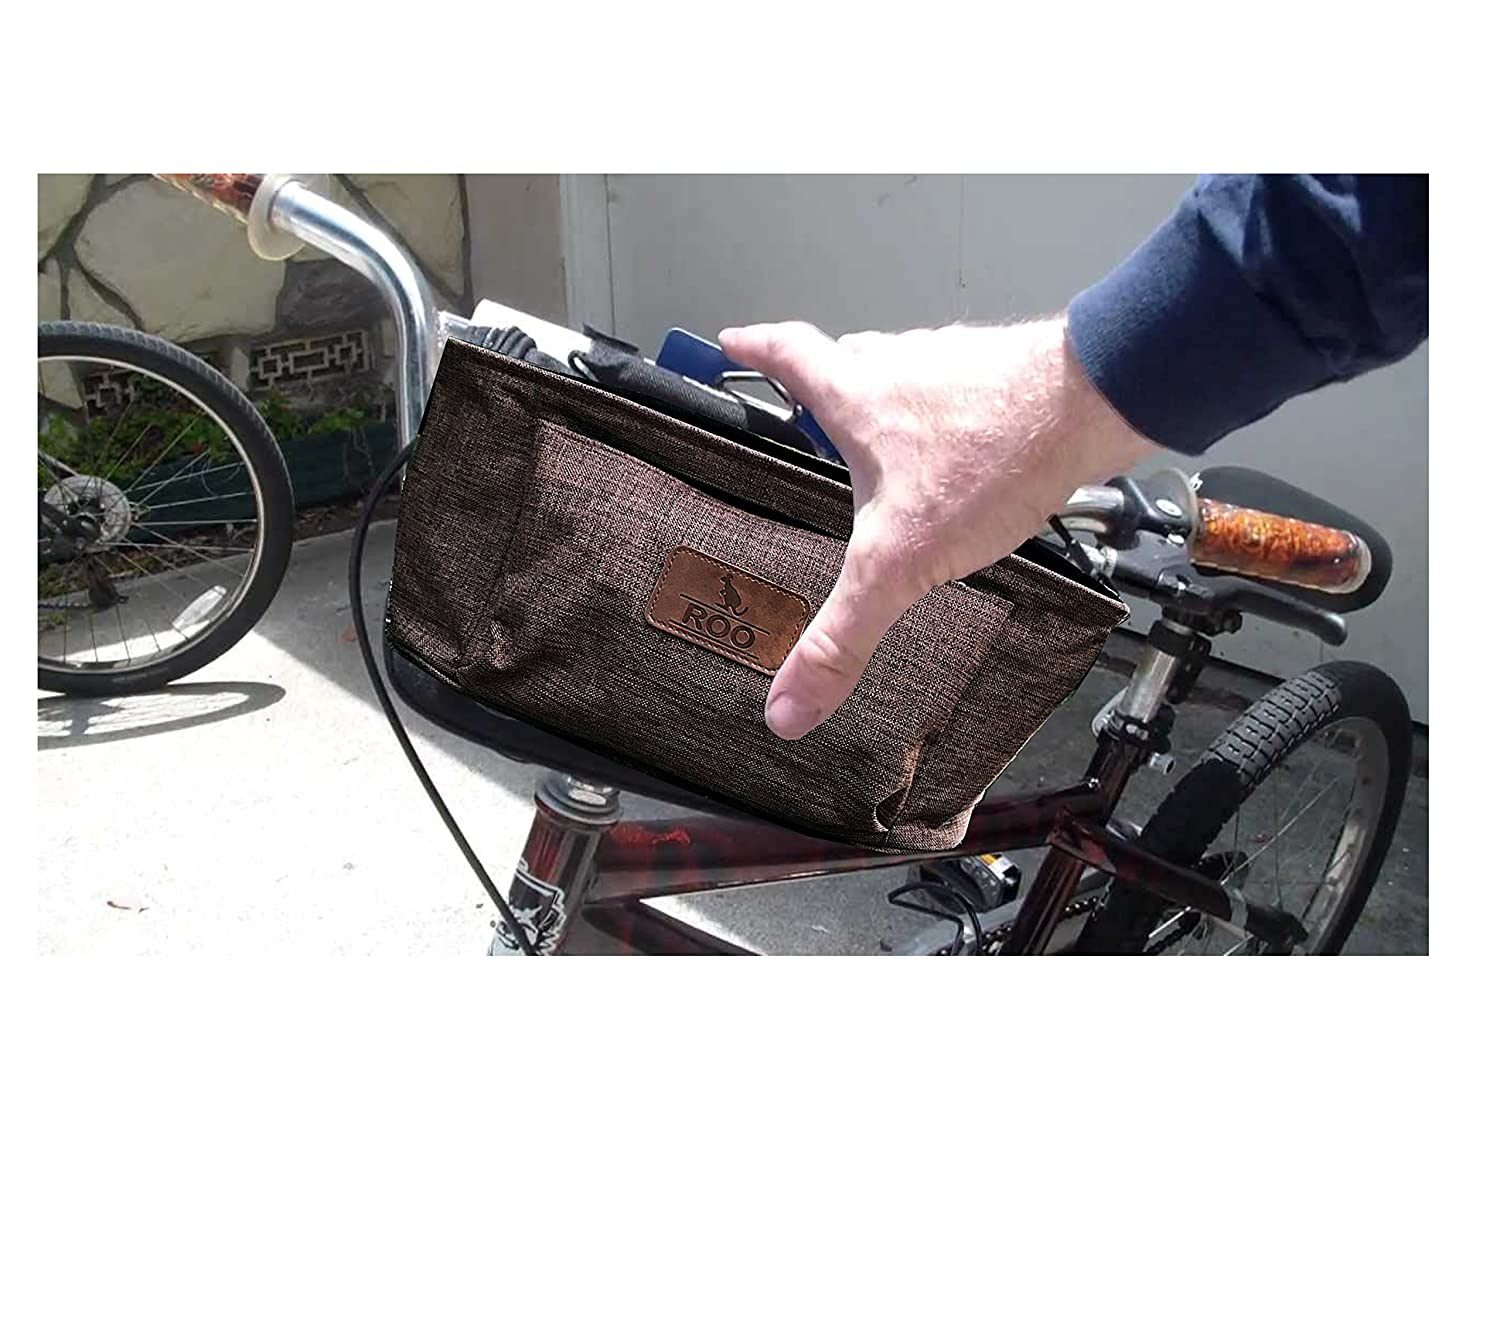 """Roo Travel Bag RED Parent Console Stroller Organizer Bike Handlebar Bag 13/"""" x 6/"""" x 6/"""" Made of Flax Universal Fit"""